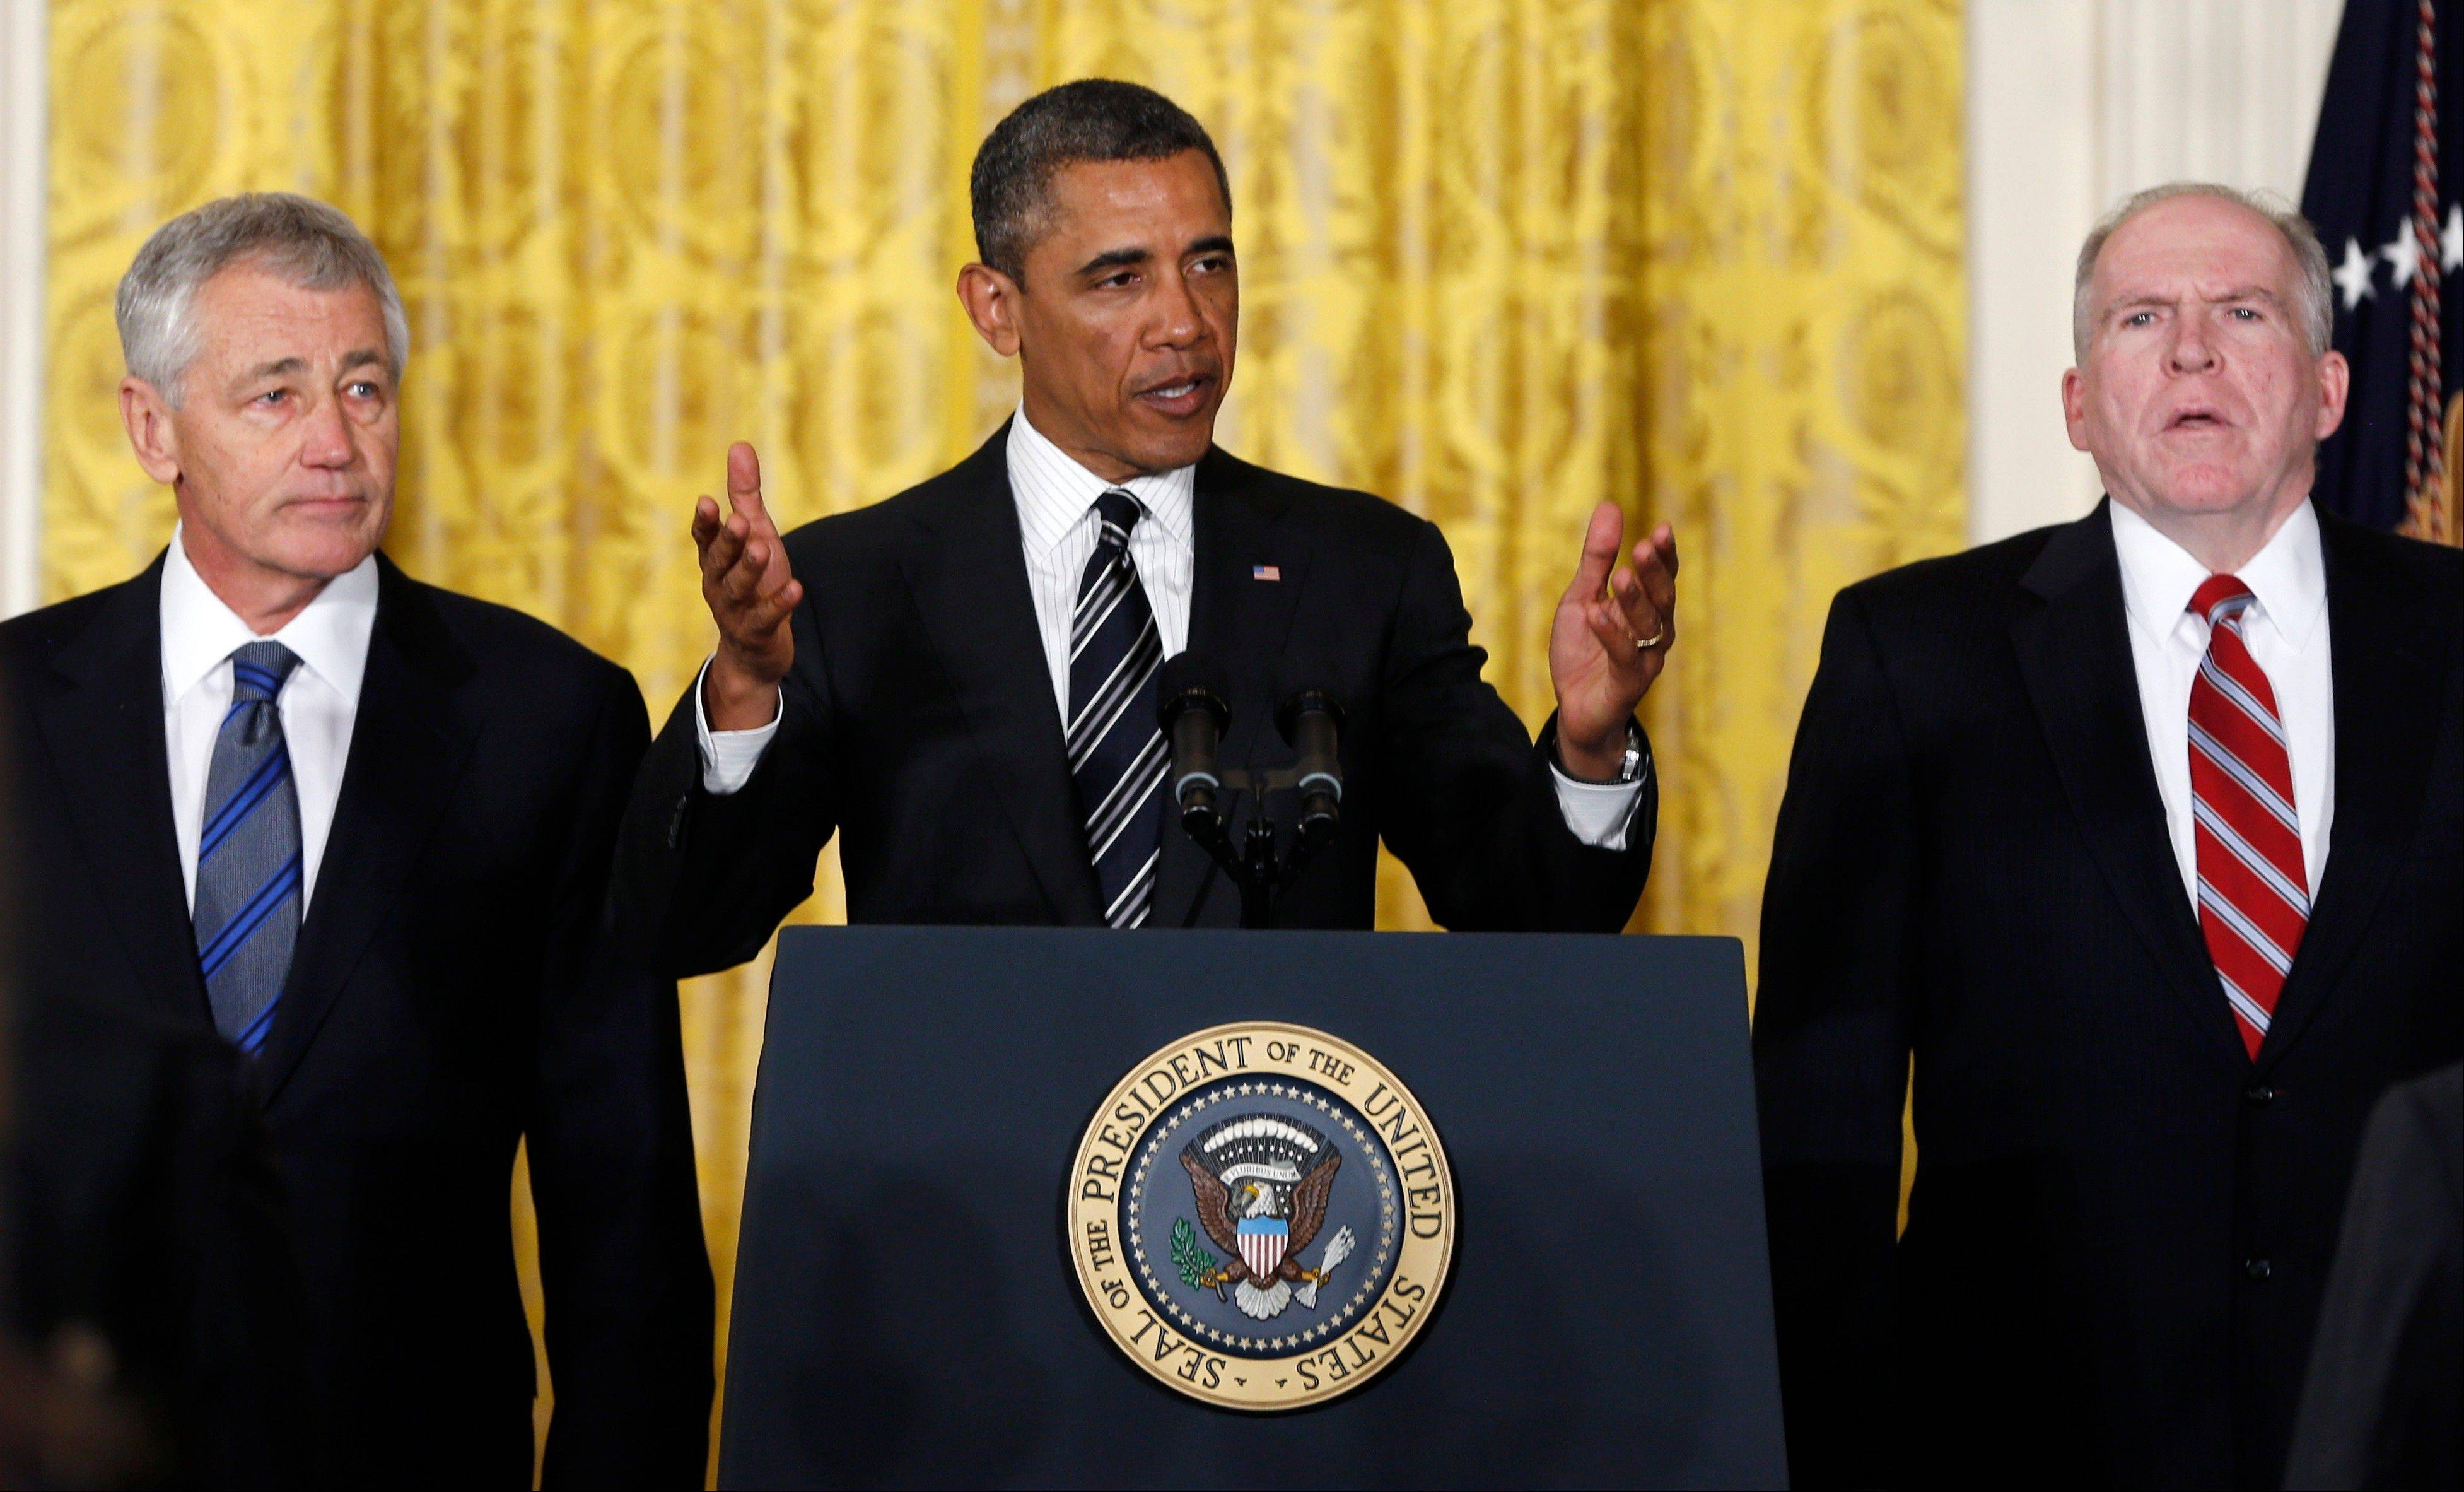 At the White House on Monday, President Barack Obama announces he is nominating Deputy National Security Adviser for Homeland Security and Counterterrorism, John Brennan, right, as CIA director; and former Nebraska Sen. Chuck Hagel, left, as defense secretary.